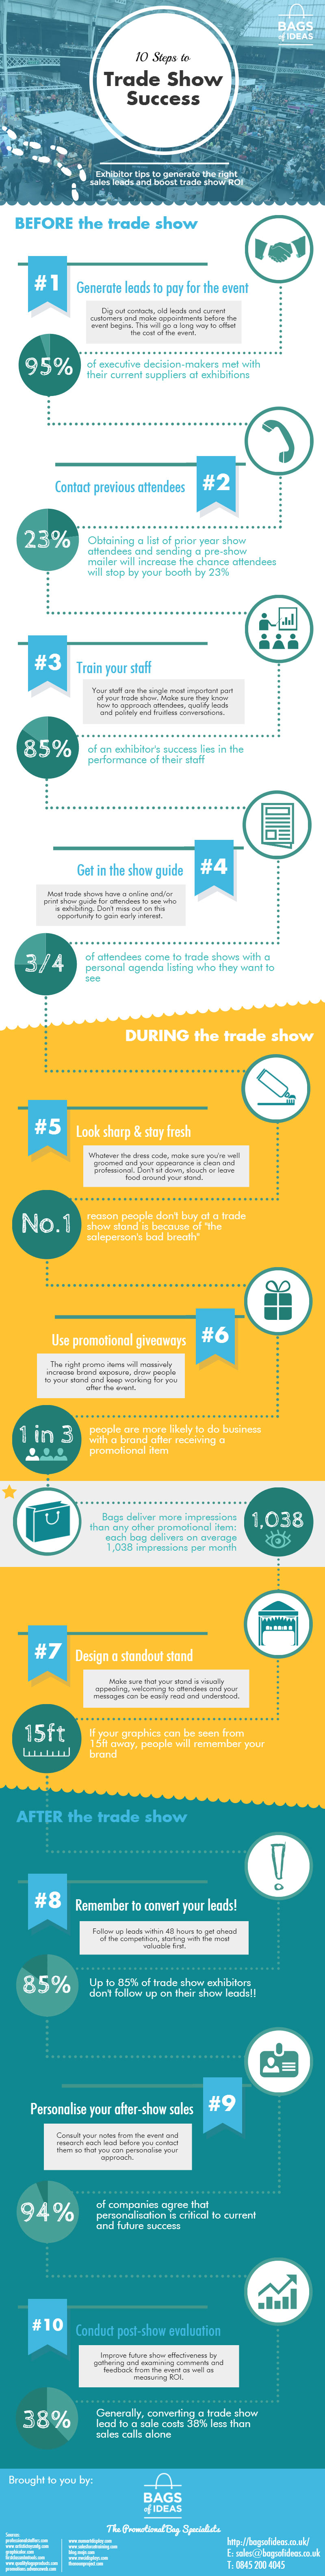 Infographic showing ten steps to trade show success